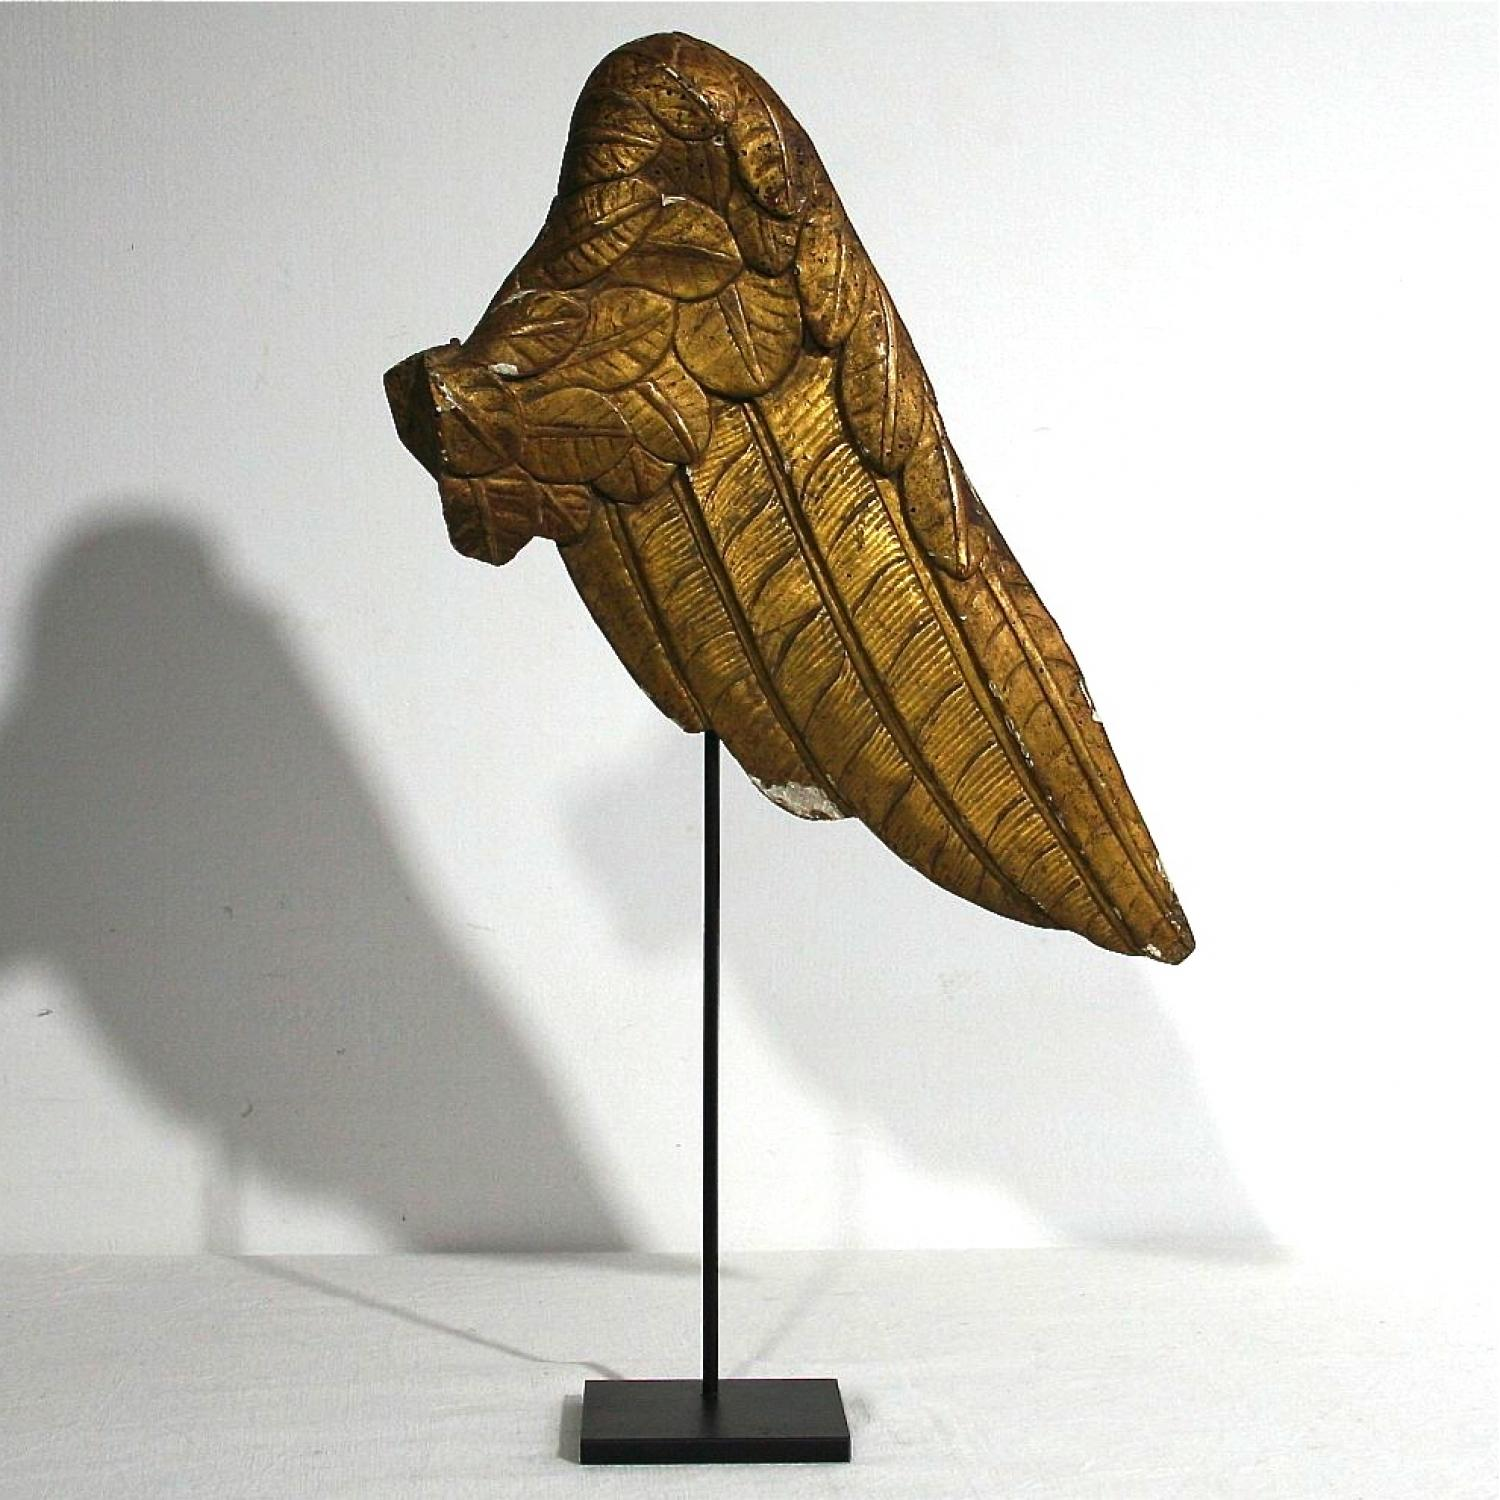 WONDERFUL 18TH CENTURY ITALIAN GILDED ANGEL WING